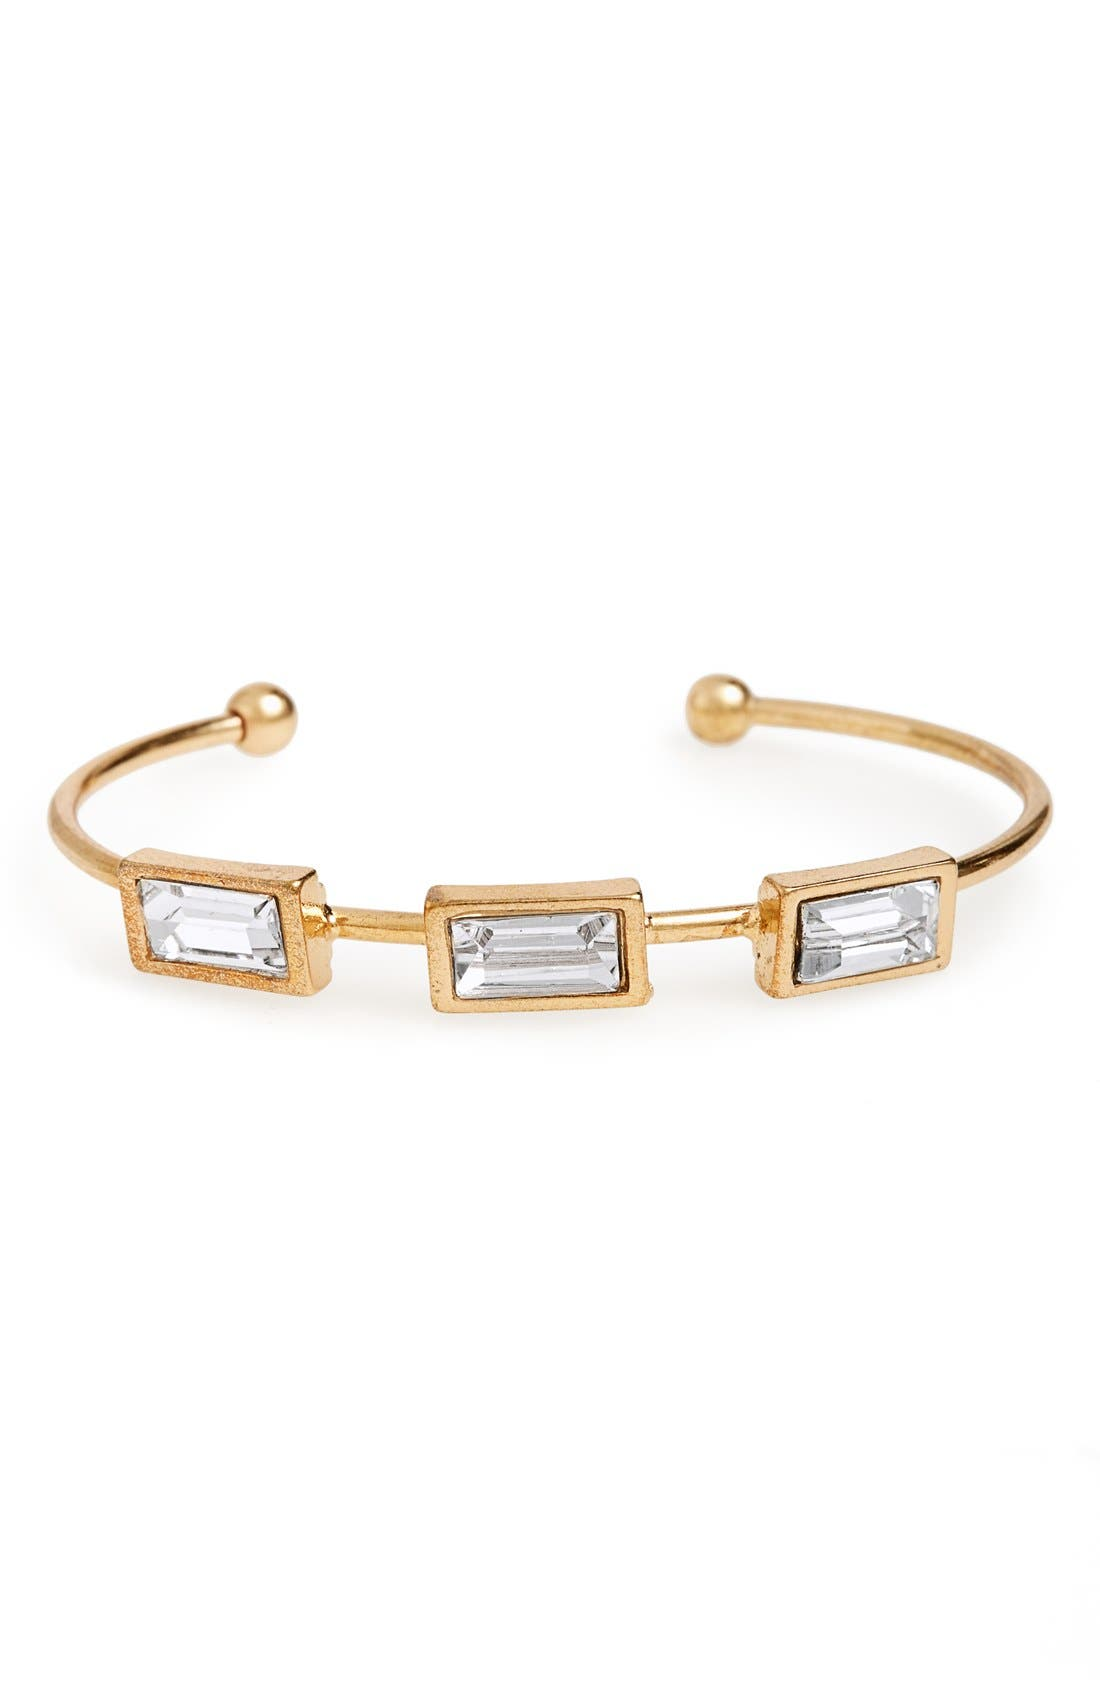 Alternate Image 1 Selected - Sole Society Crystal Cuff